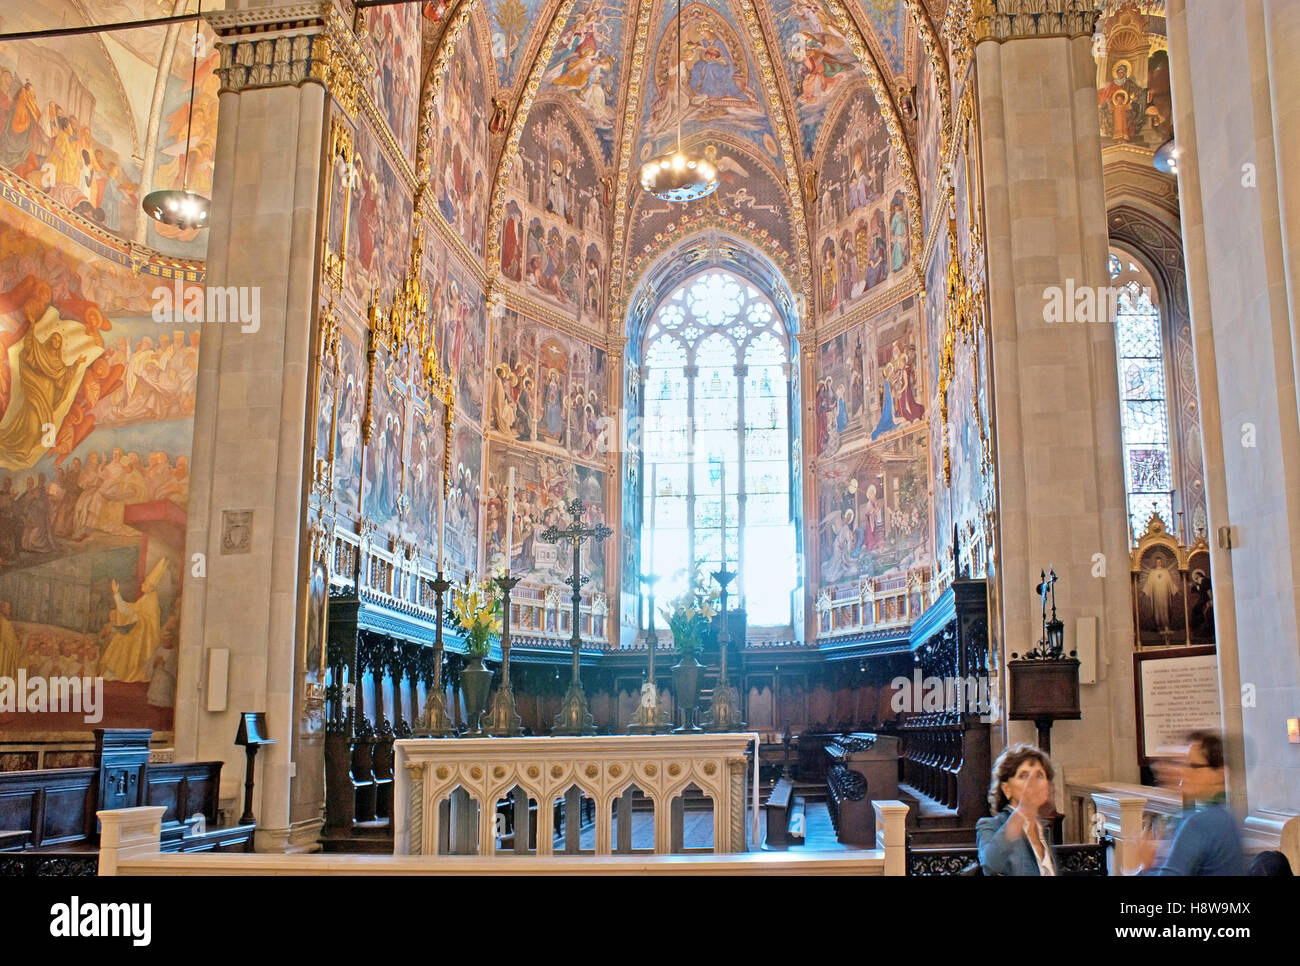 One of the numerous Chapels in Basilica of Santa Casa, located around the Shrine of the Holy House of Virgin Mary - Stock Image